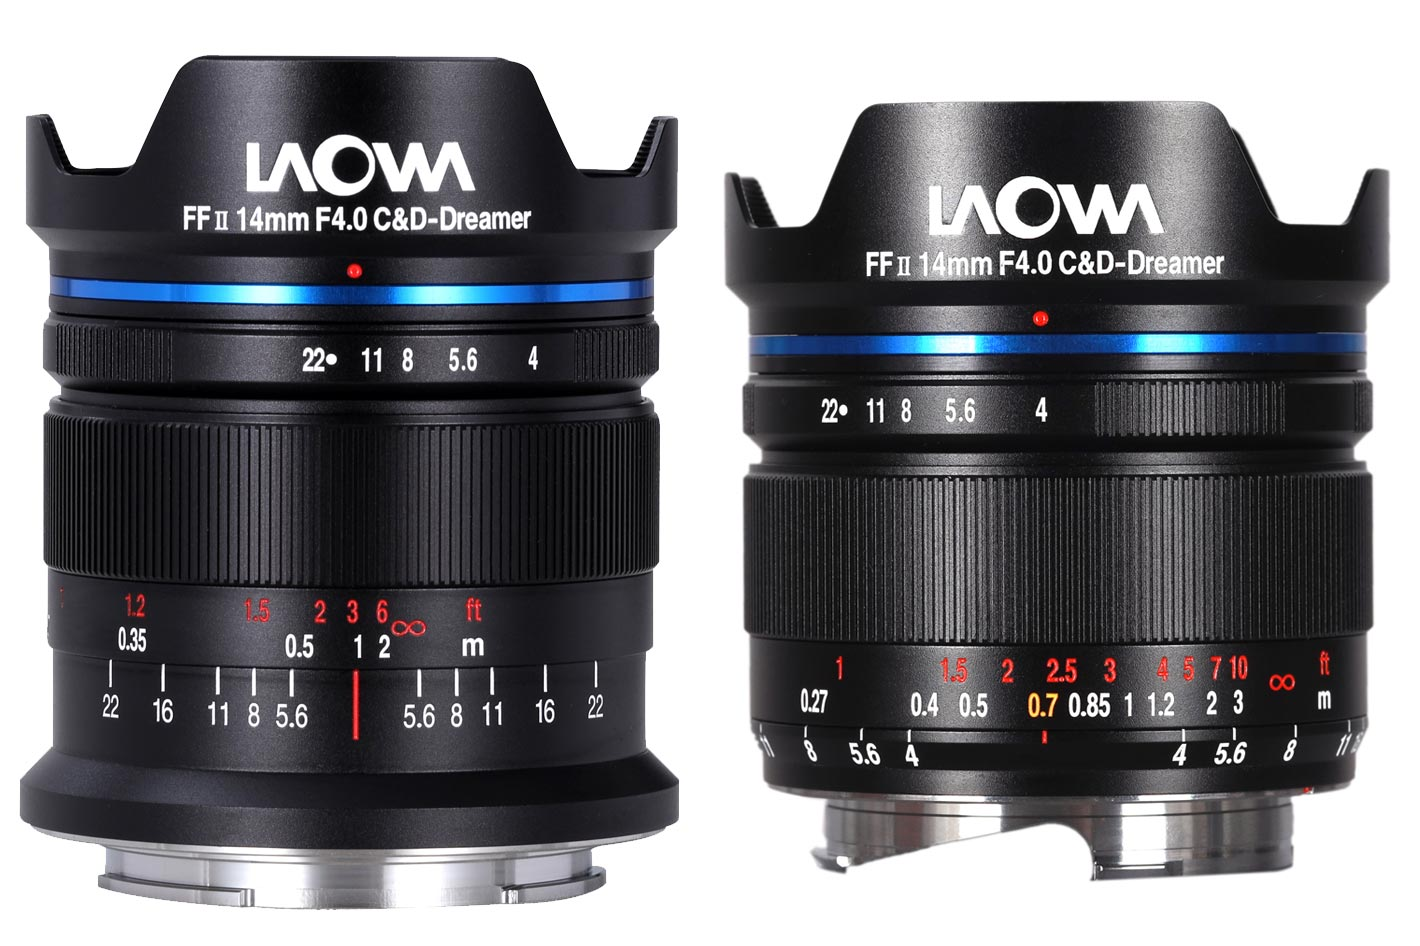 Laowa 14mm f/4 FF RL ZERO-D: a new ultra-wide-angle lens